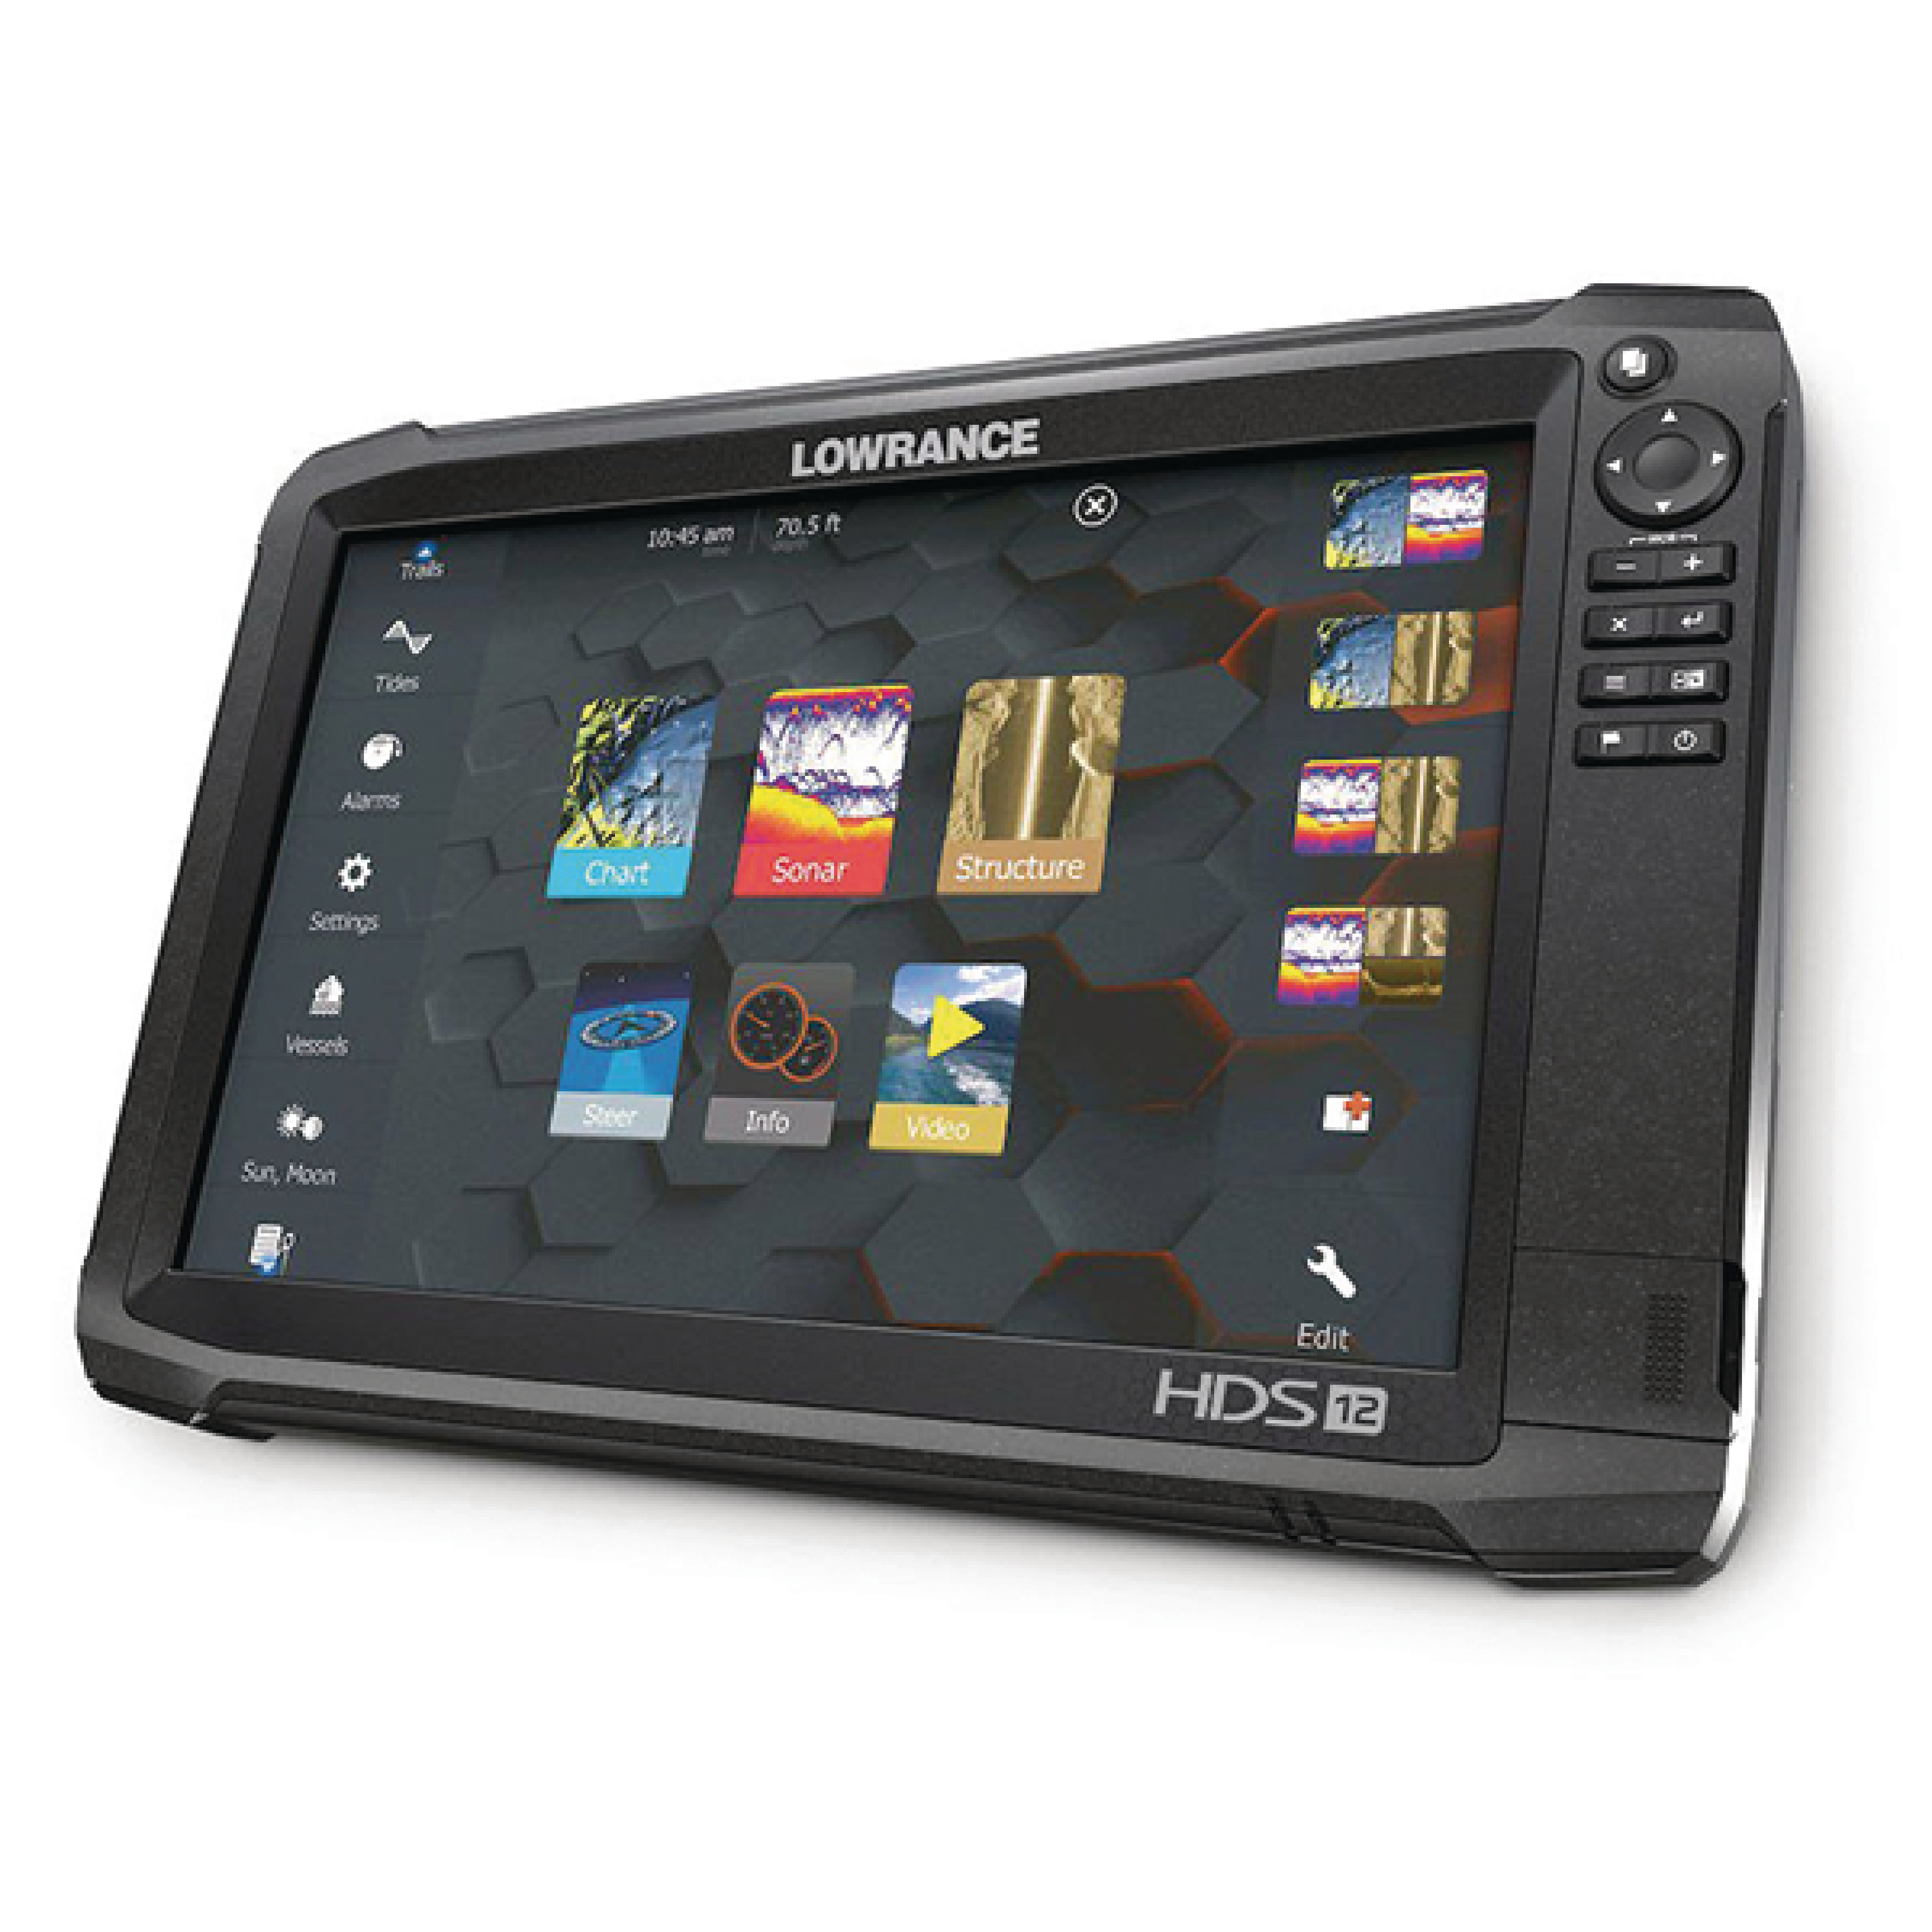 "Lowrance 000-13686-001 HDS Carbon 12 Fishfinder & Chartplotter with 12"" Display (No Transducer)"